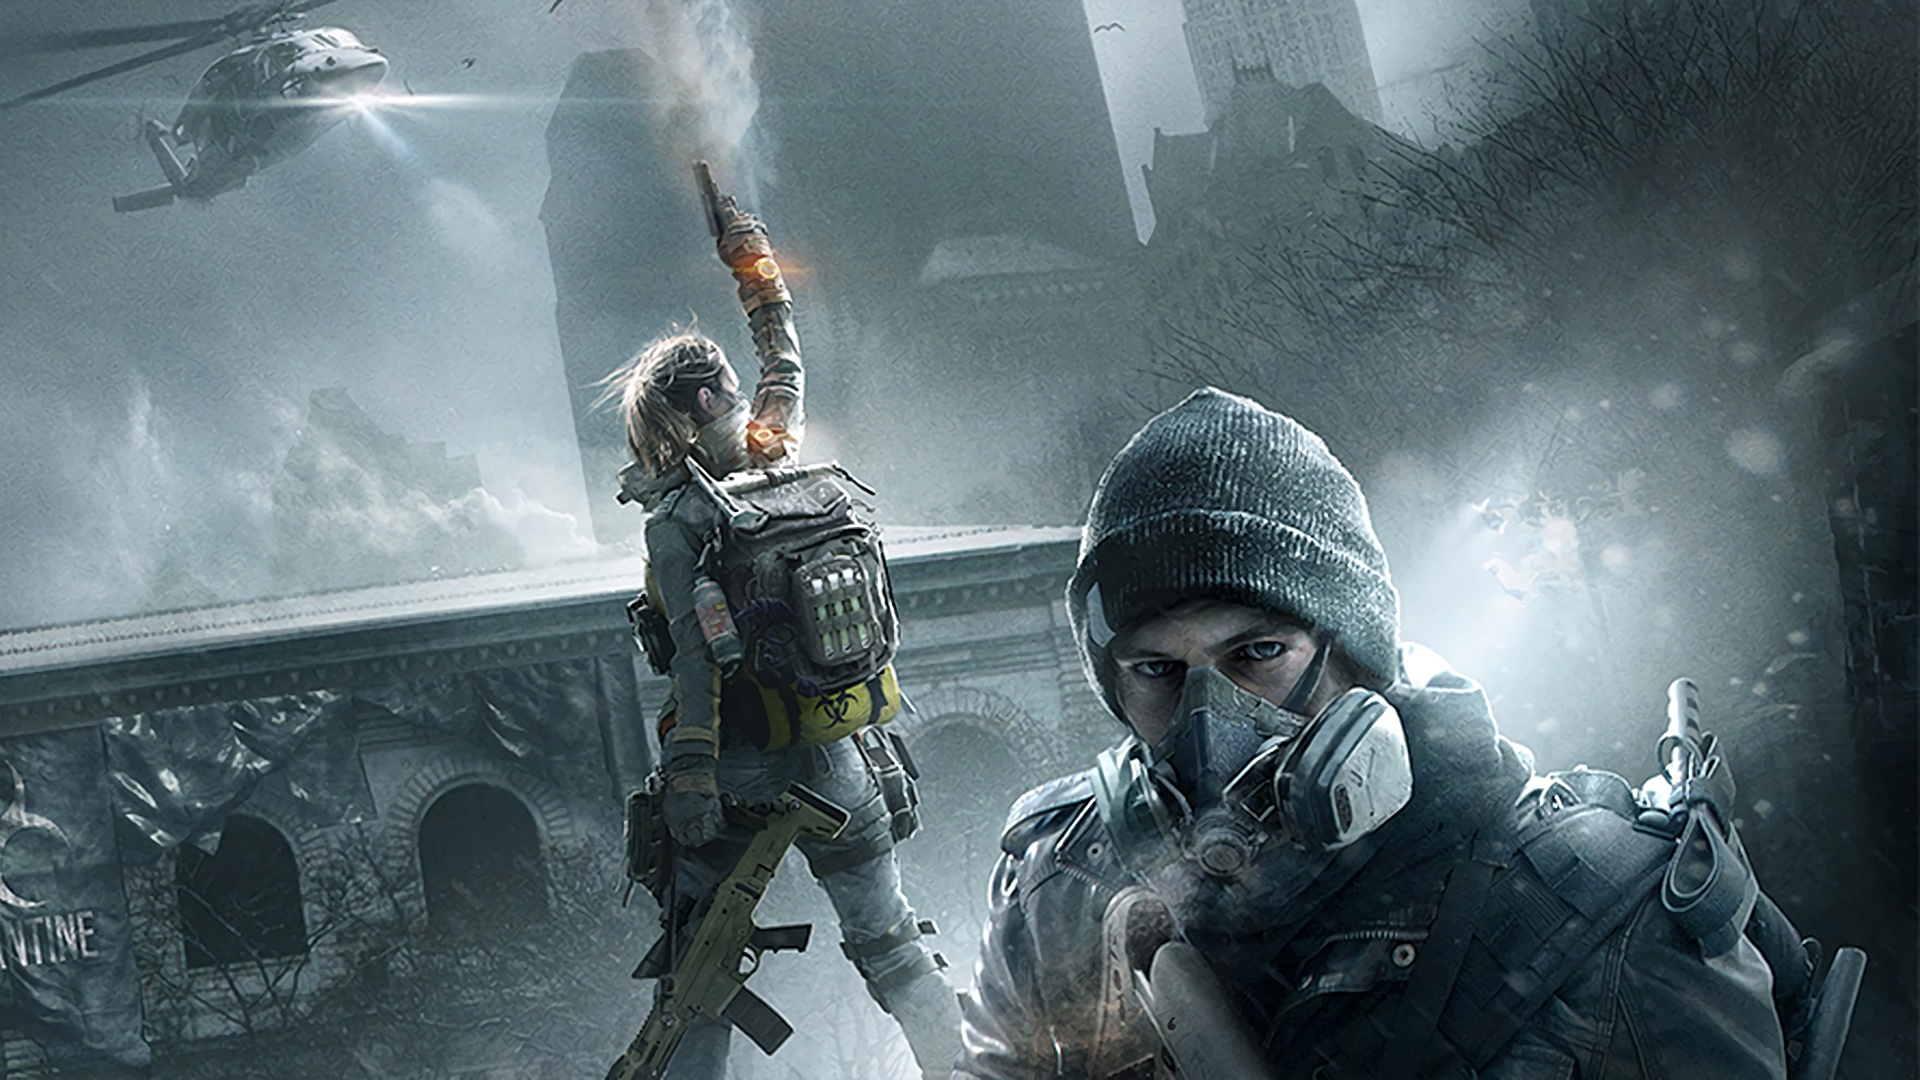 The Division Wallpaper Px, - Tom Clancy's The Division Обои , HD Wallpaper & Backgrounds